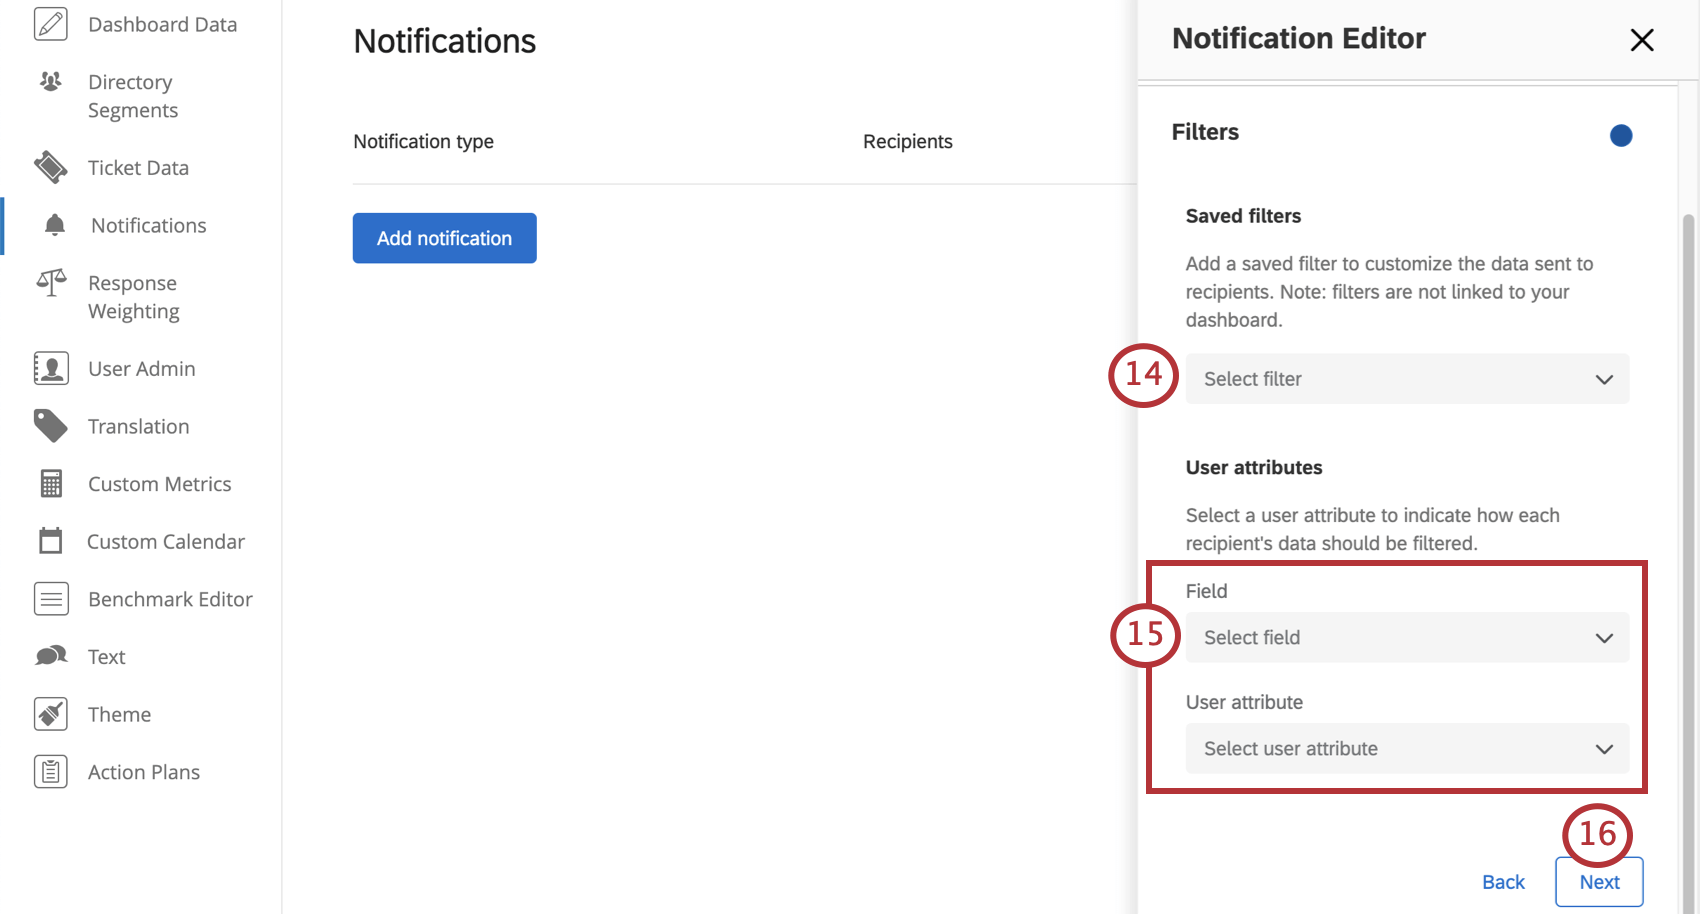 Field for filters, then a field for entering user attributes and values